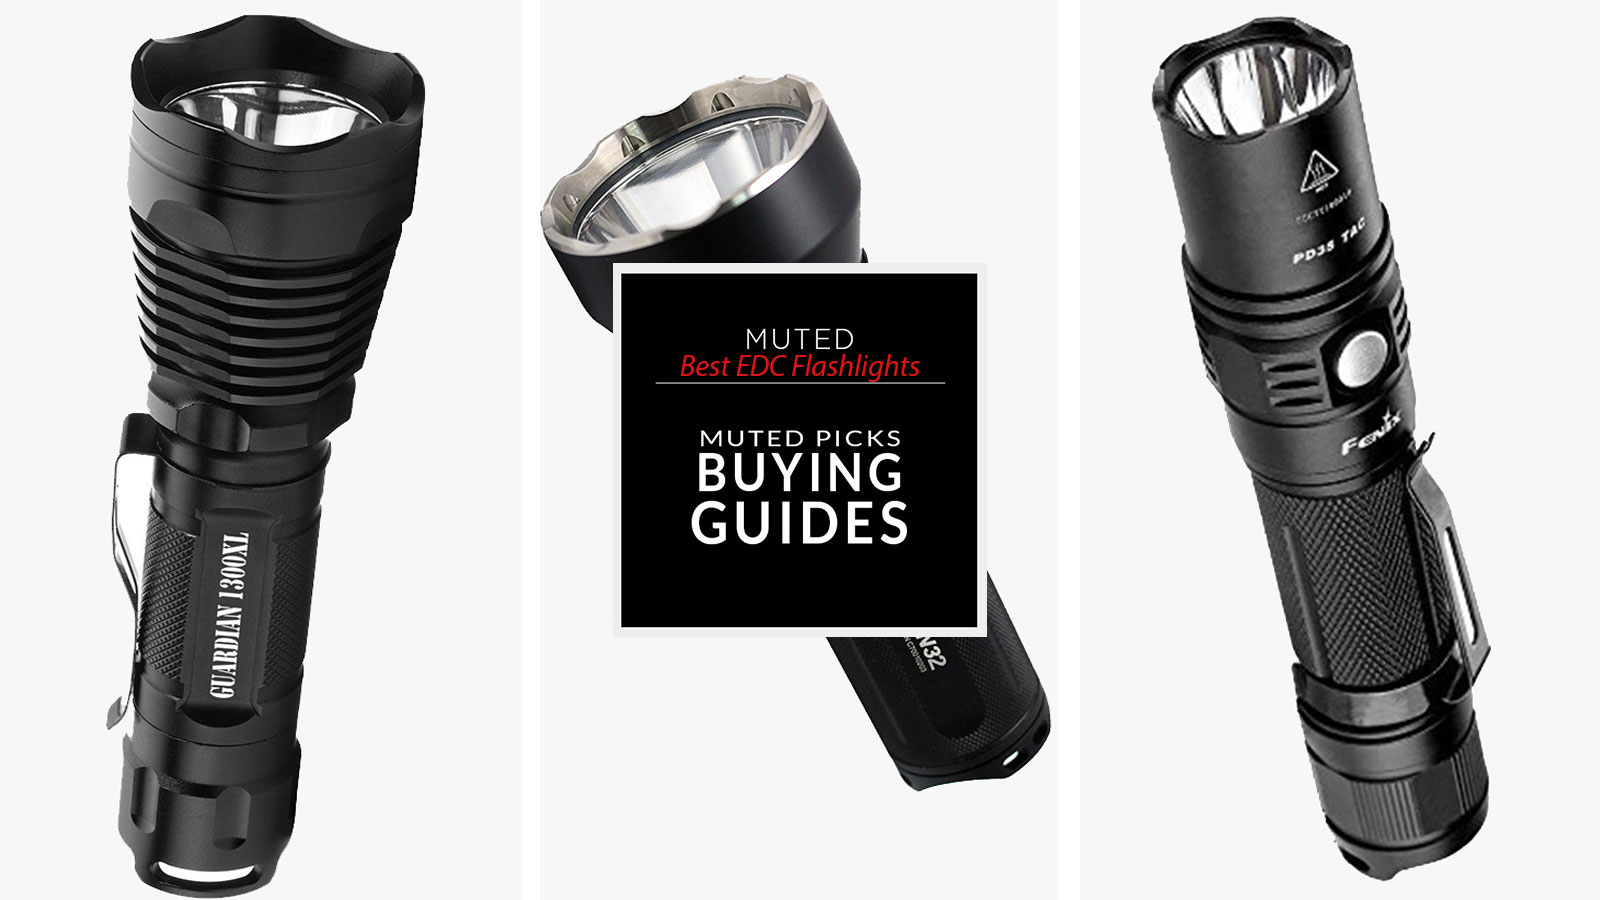 best edc flashlights